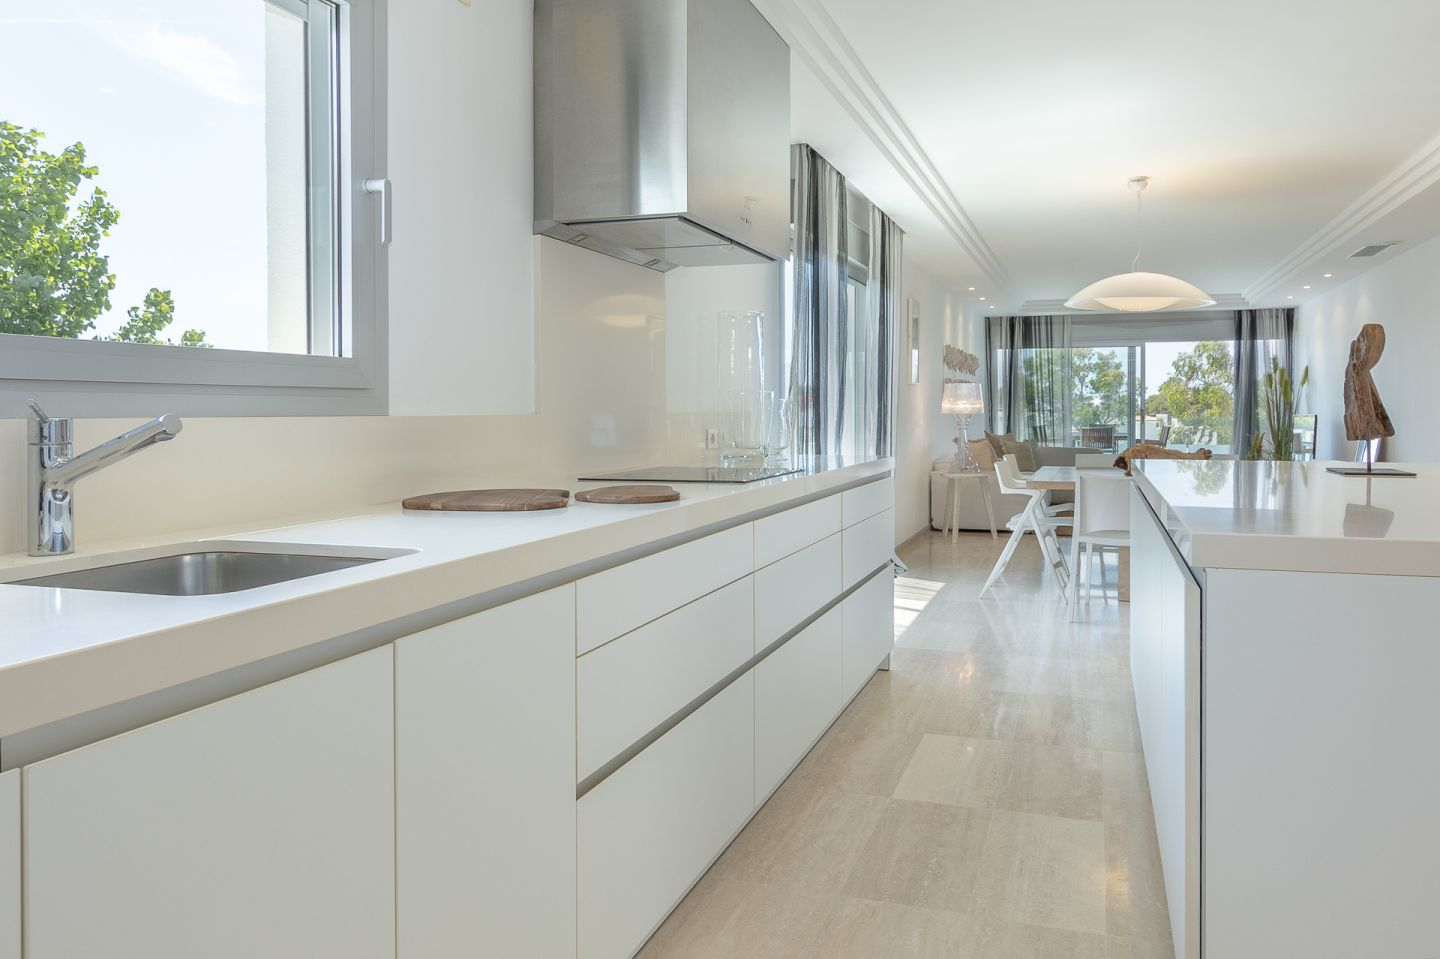 4 Bed Penthouse for sale in PUERTO POLLENSA 7